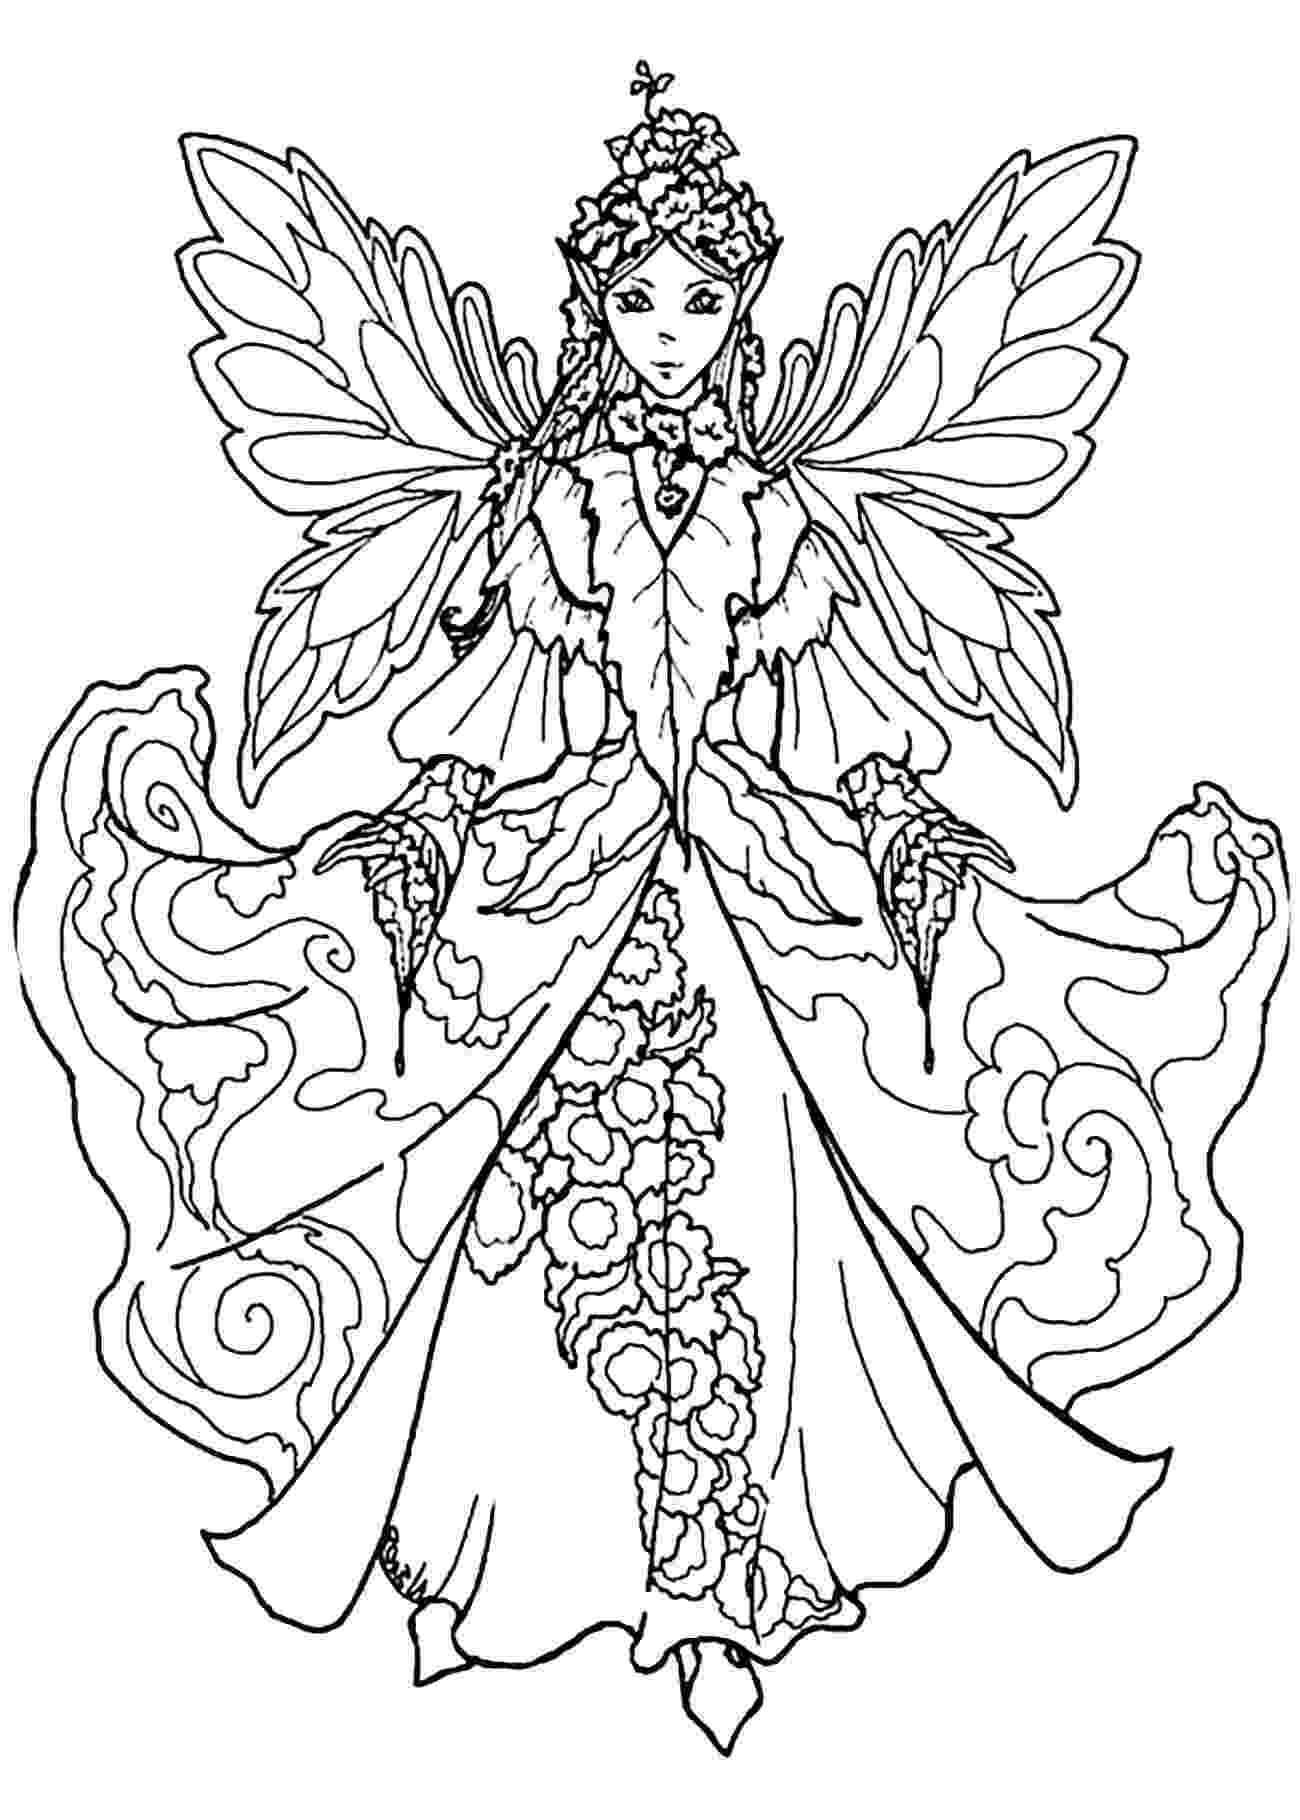 fairy pictures to colour and print free printable fairy coloring pages for kids pictures colour to print fairy and